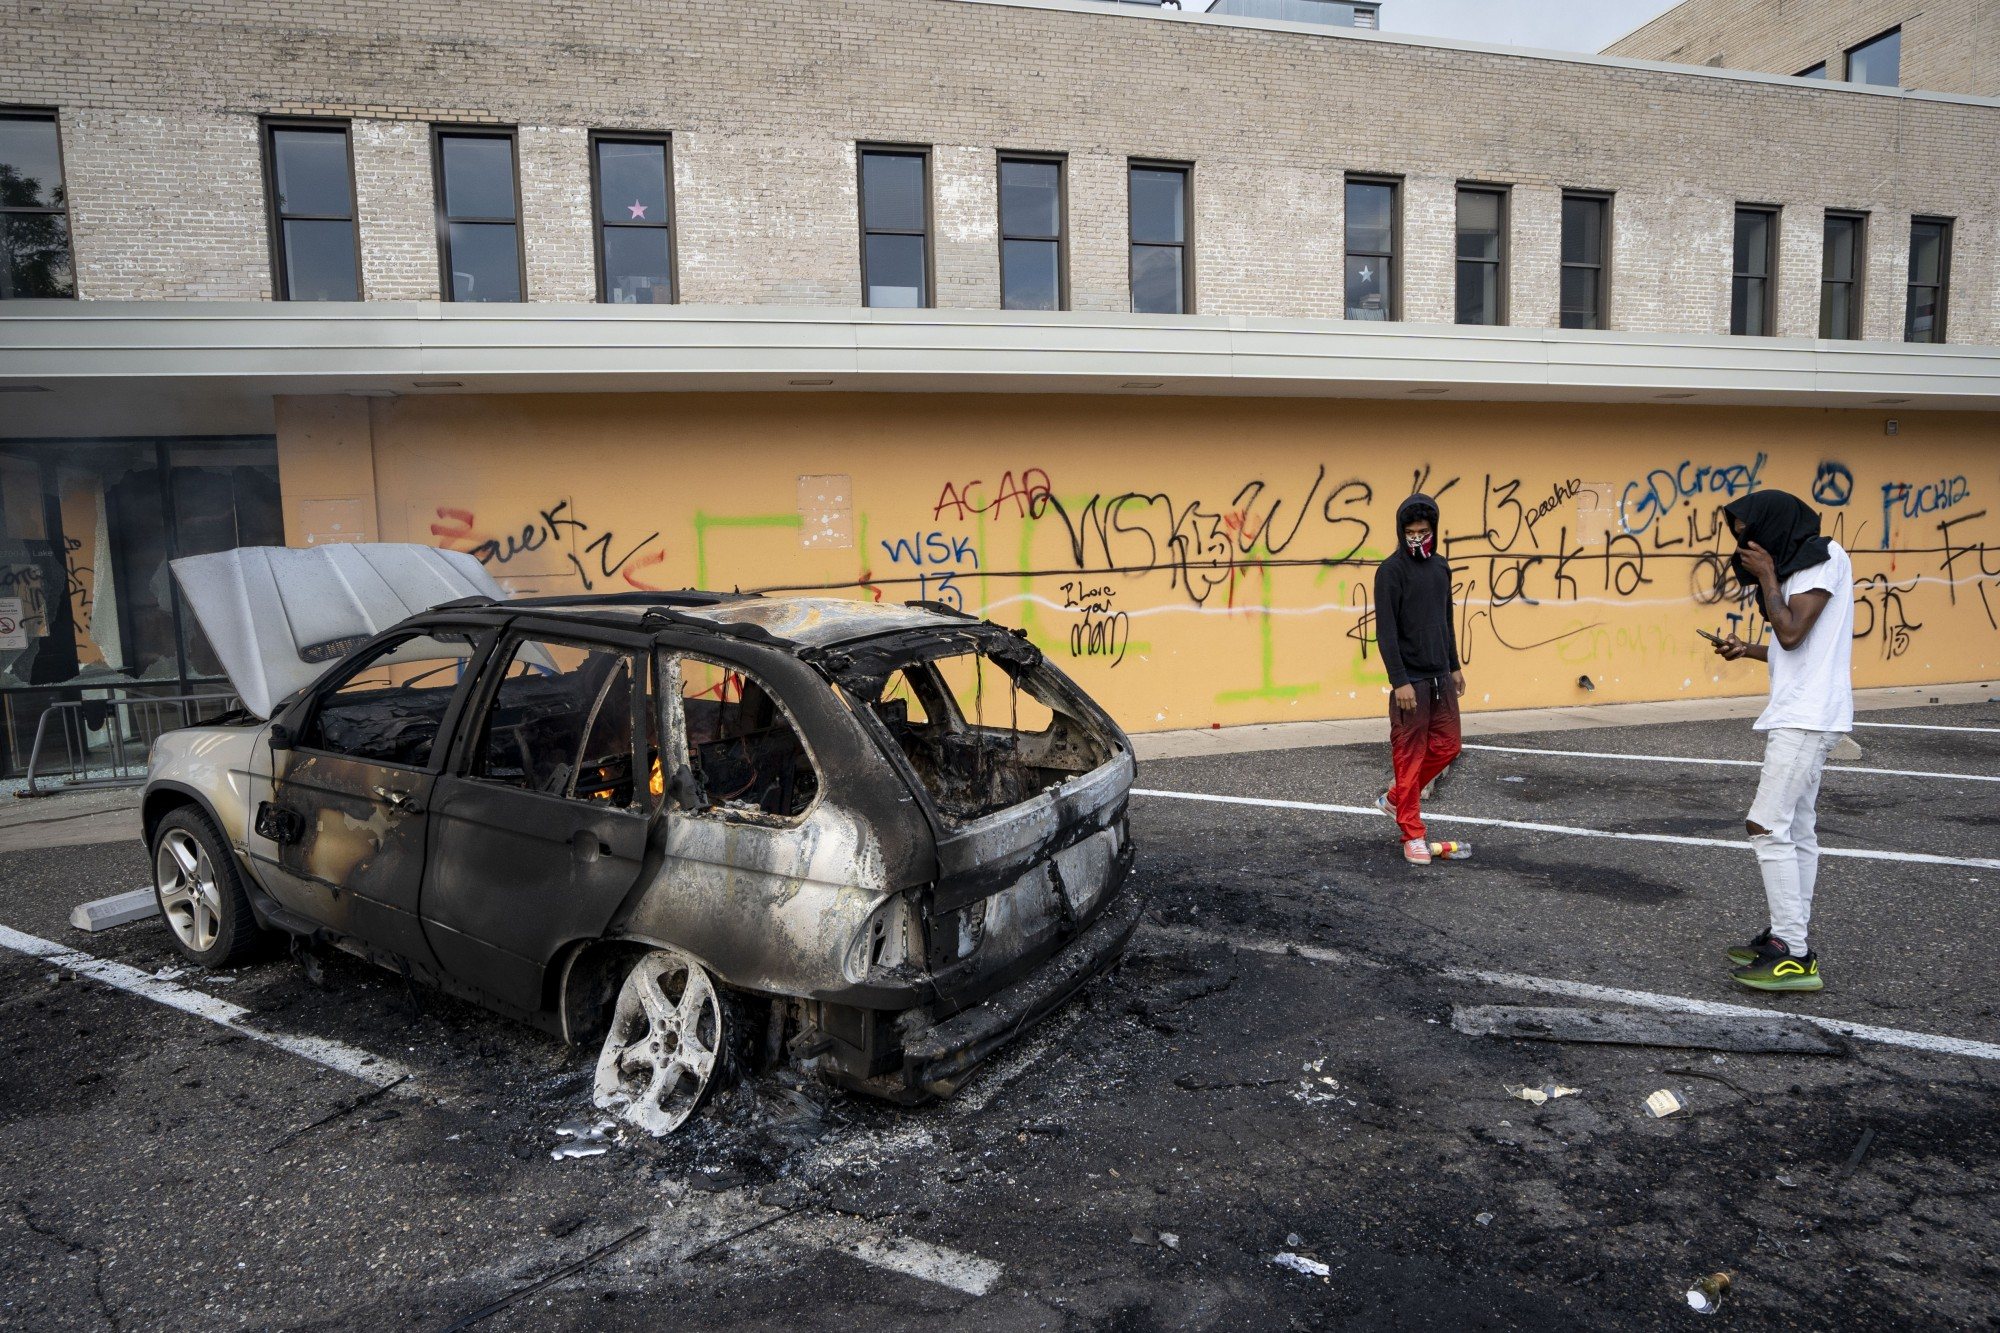 A burned-out car remains the morning after a second night of protests where dozens of businesses were vandalized near the Minneapolis Police 3rd Precinct on Thursday, May 28.